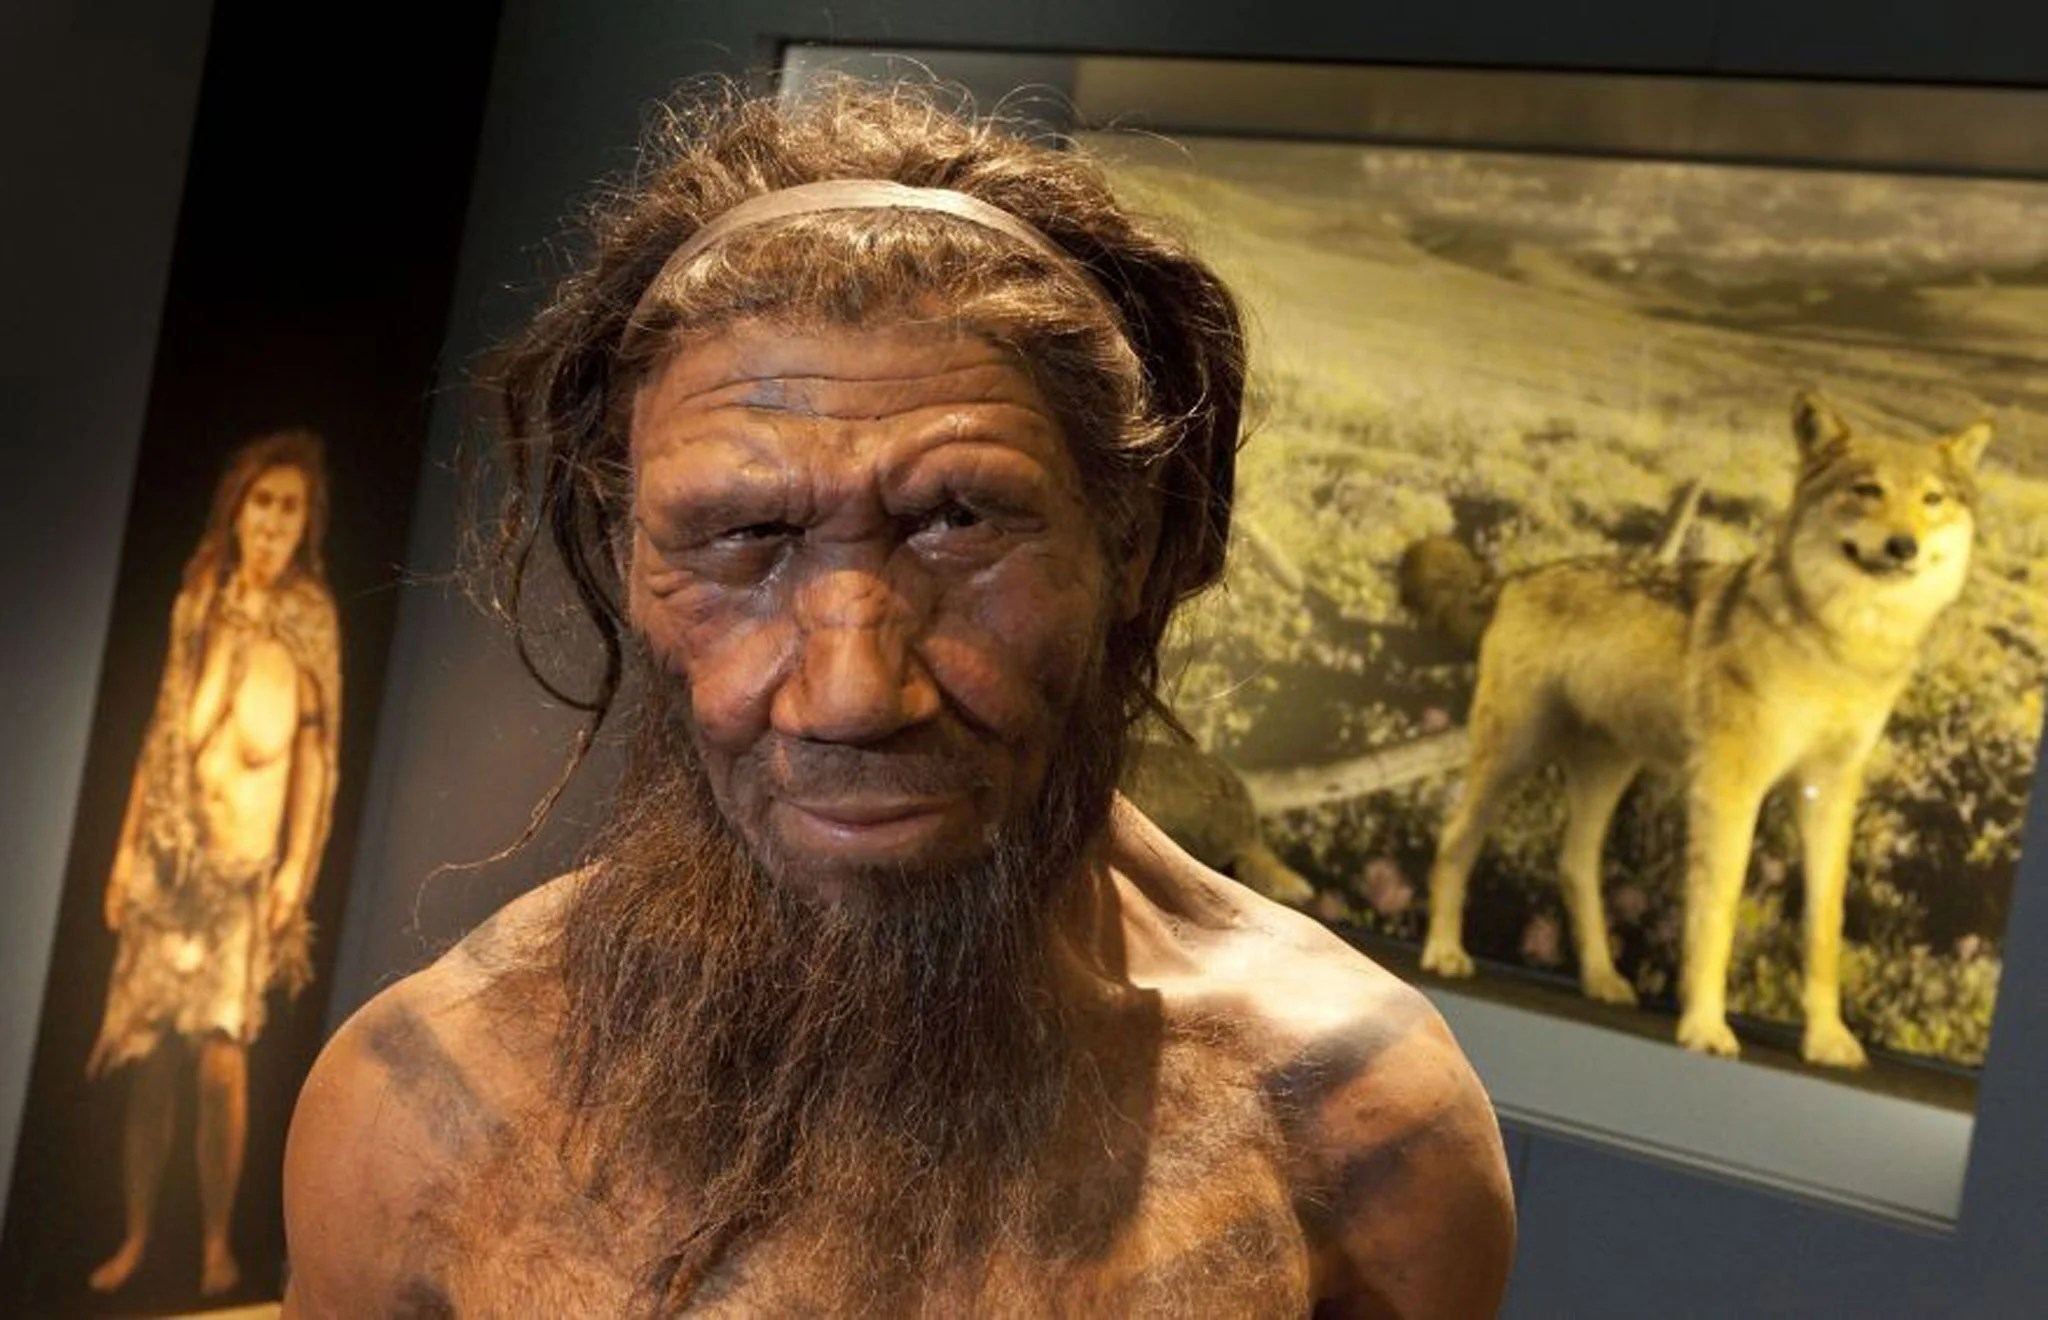 Some Neanderthals Were Vegetarians Who Used Natural Forms Of Penicillin And Aspirin As Medicine